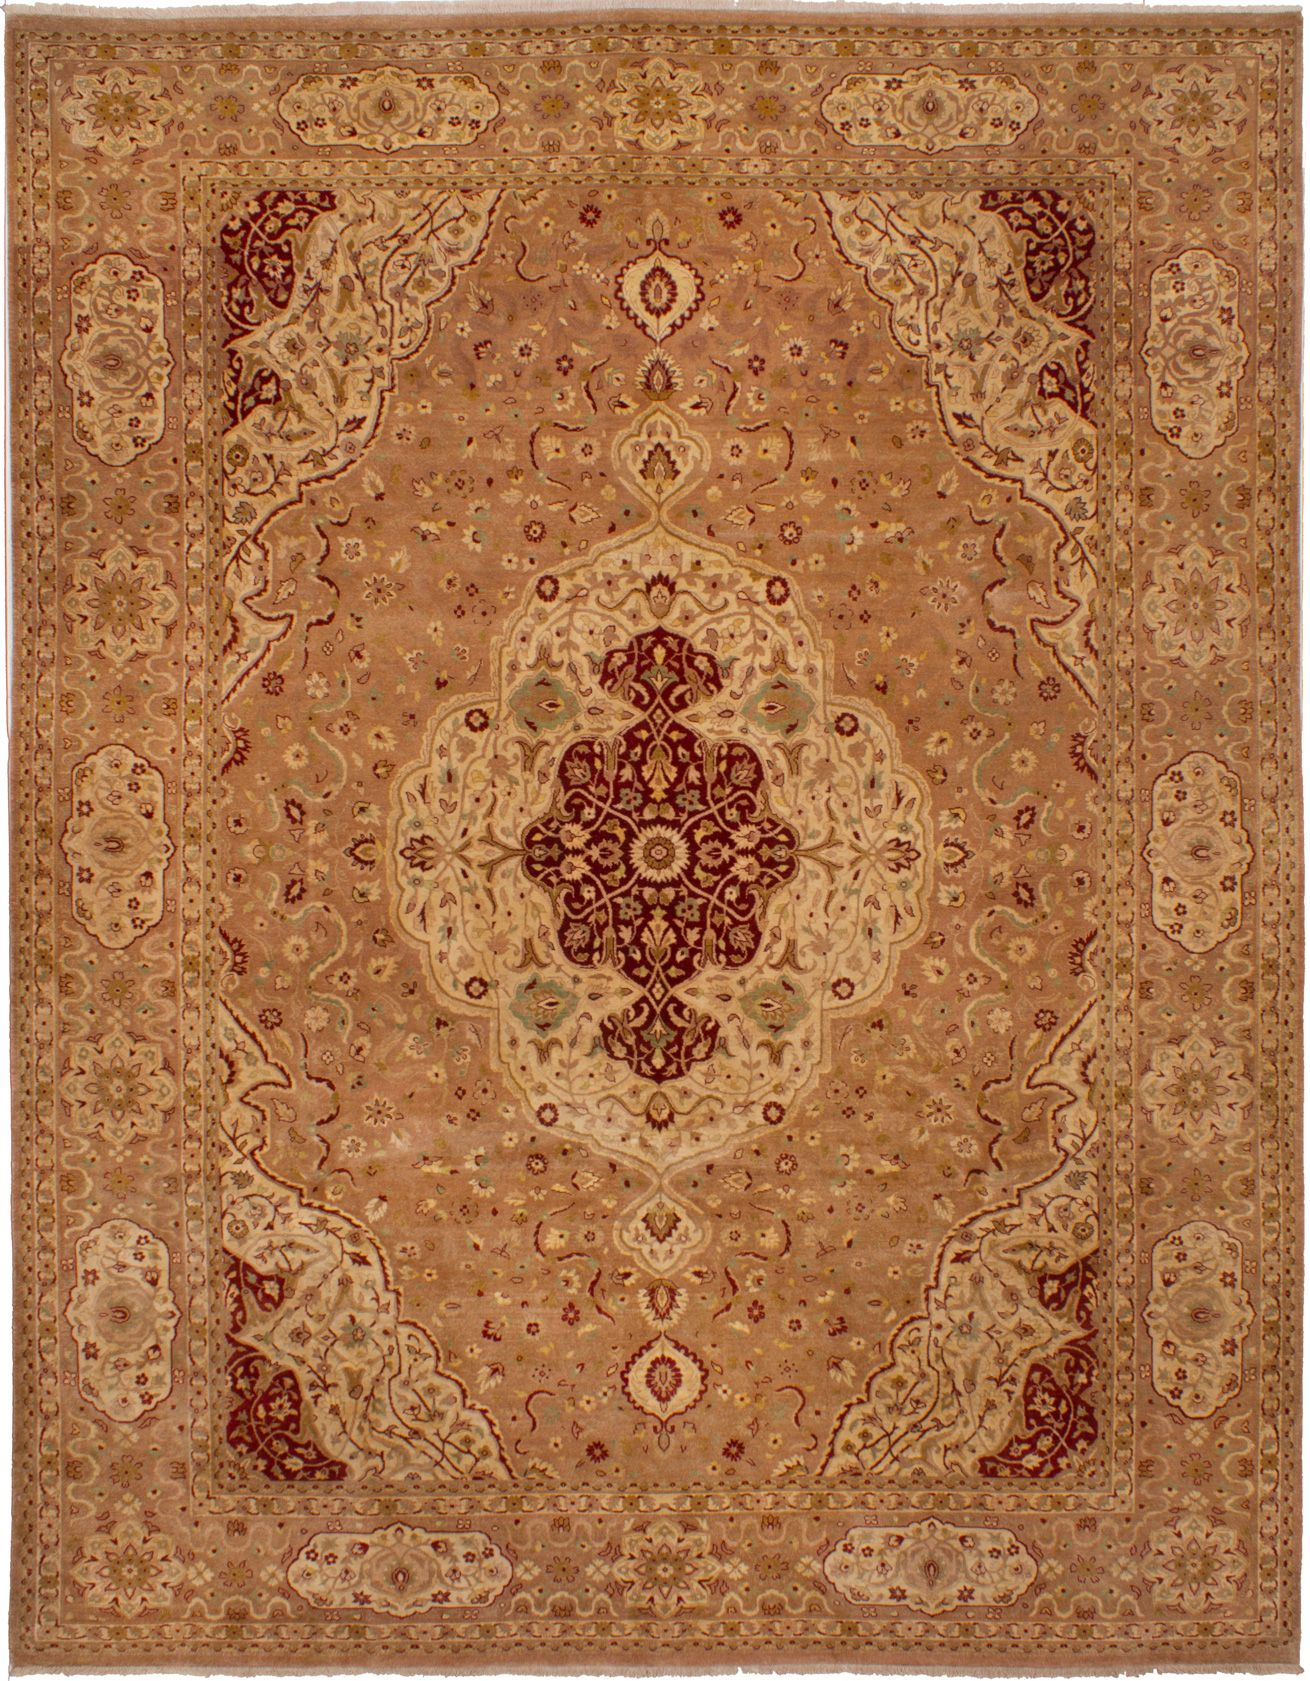 Hand-knotted Peshawar Finest Tan Wool Rug 9'2in x 11'9in at RugsBySize.com